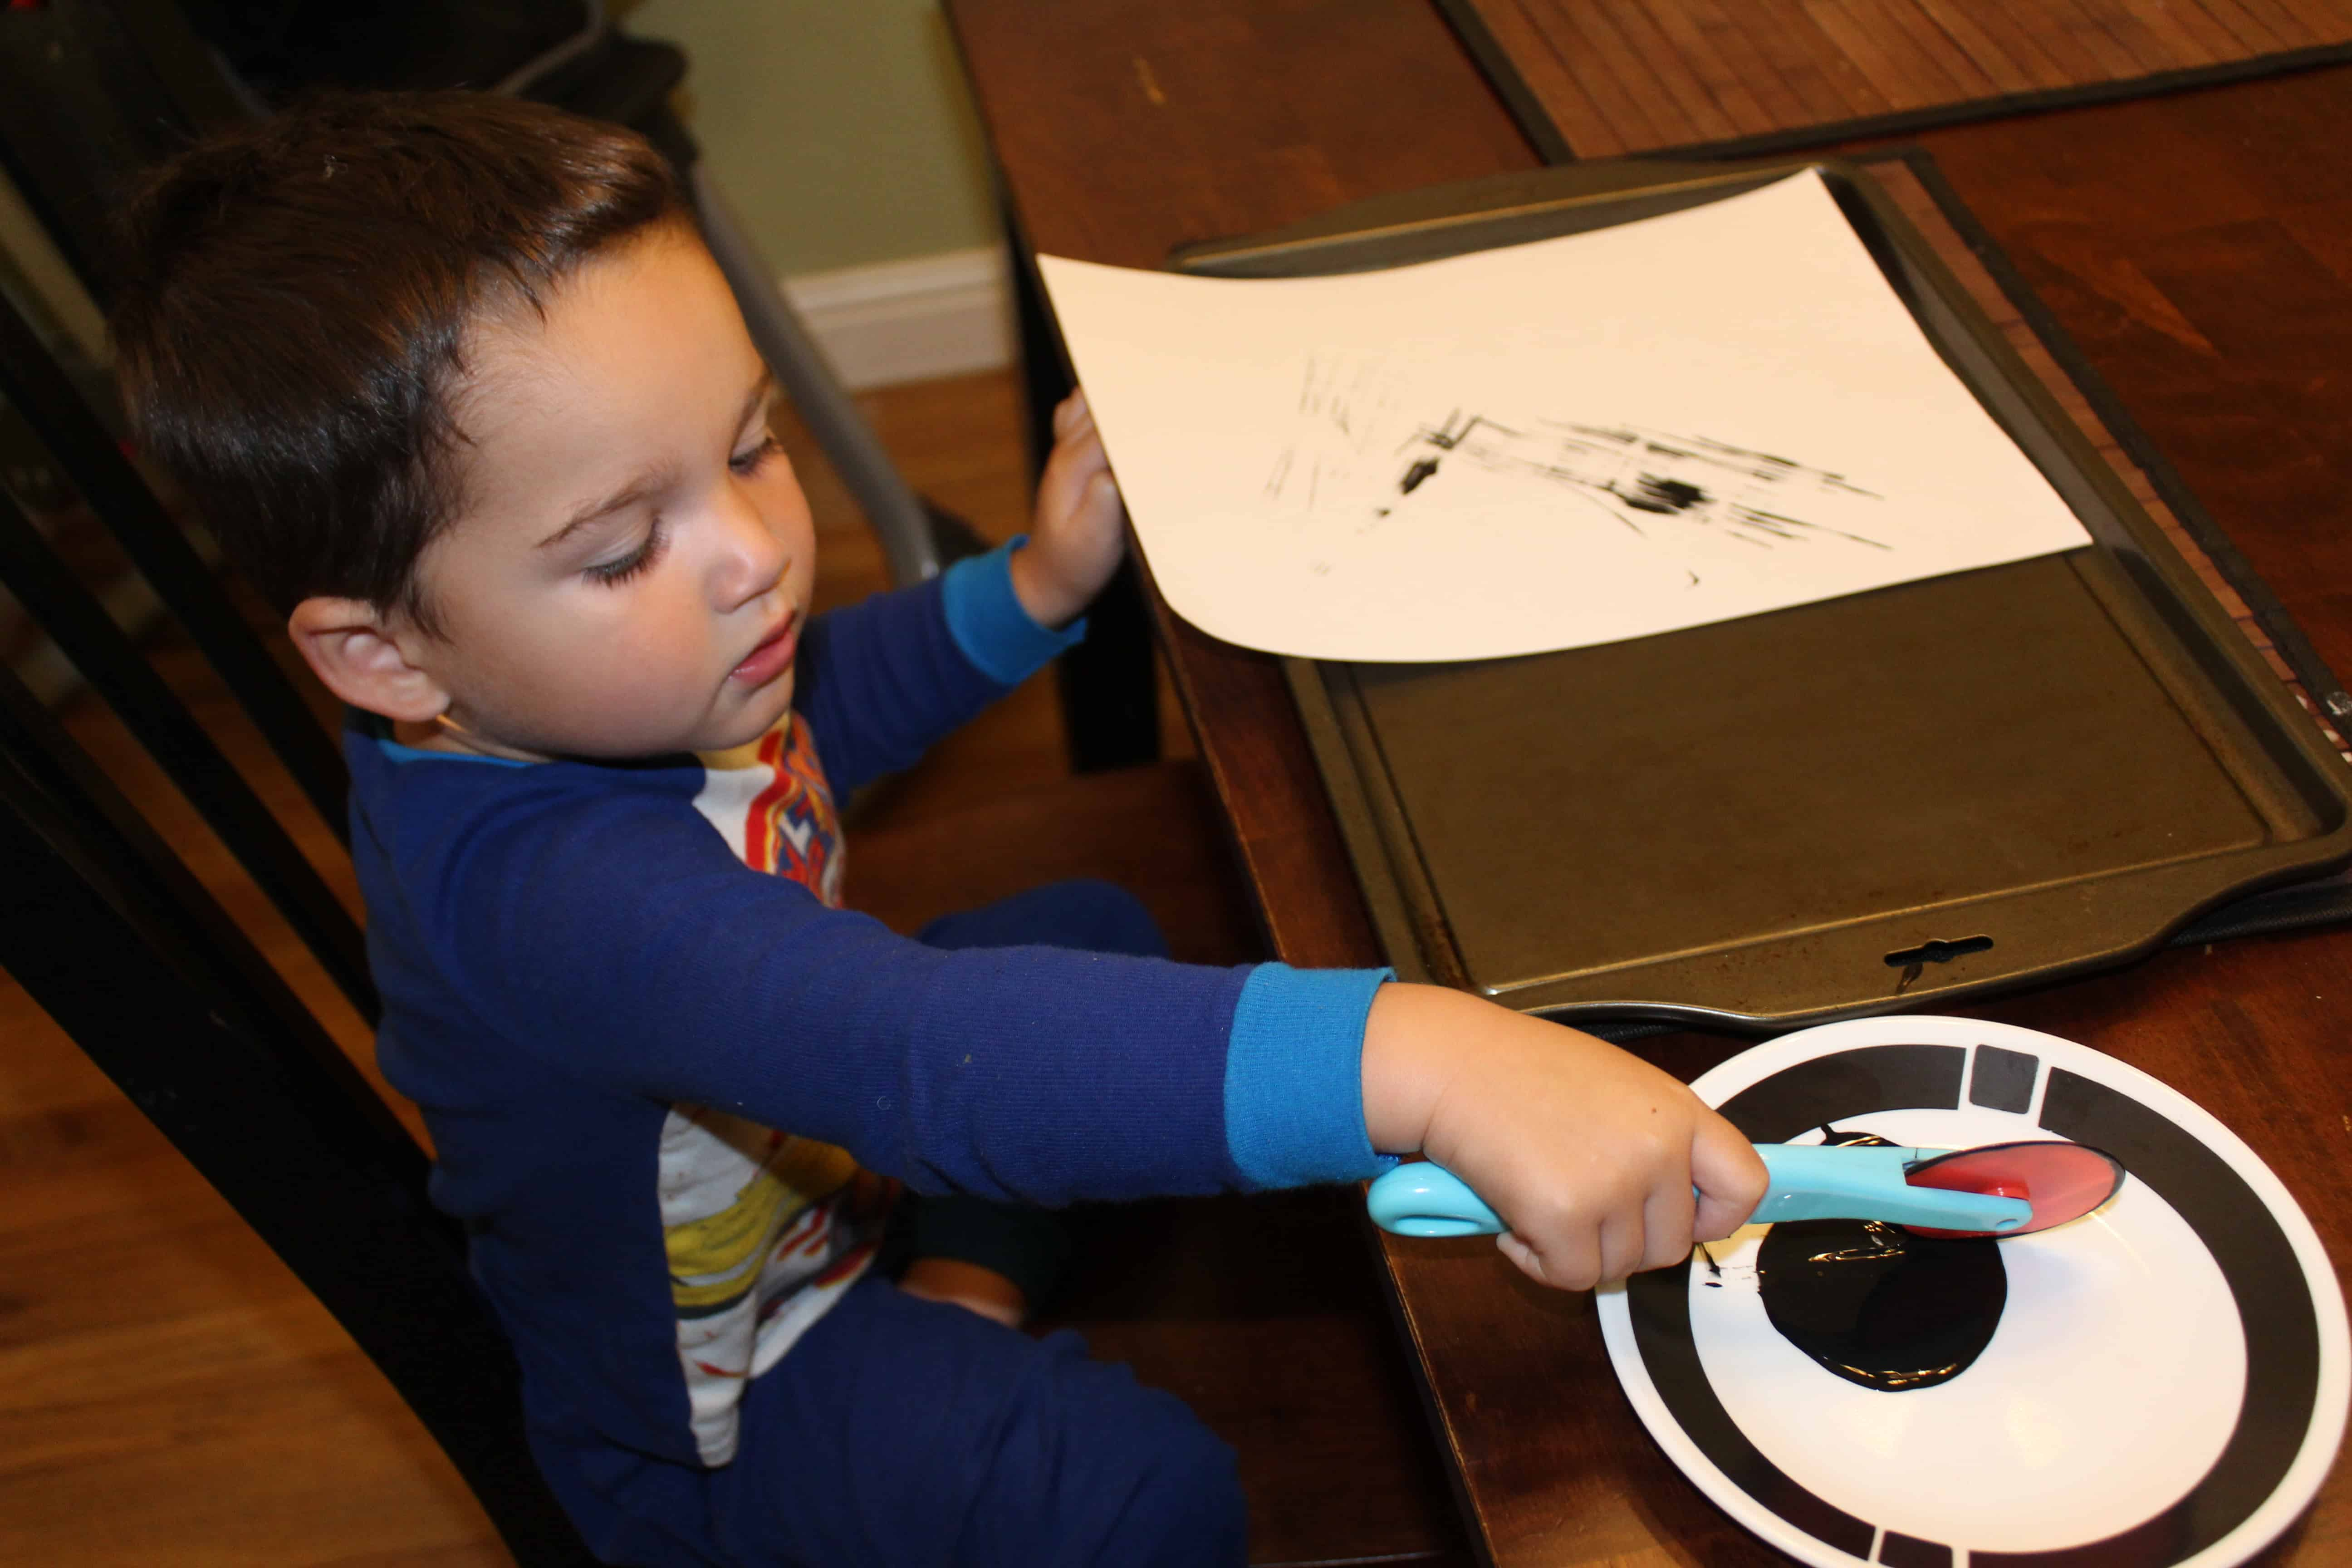 A bit of black paint on a plate toddler using playdough tool to paint